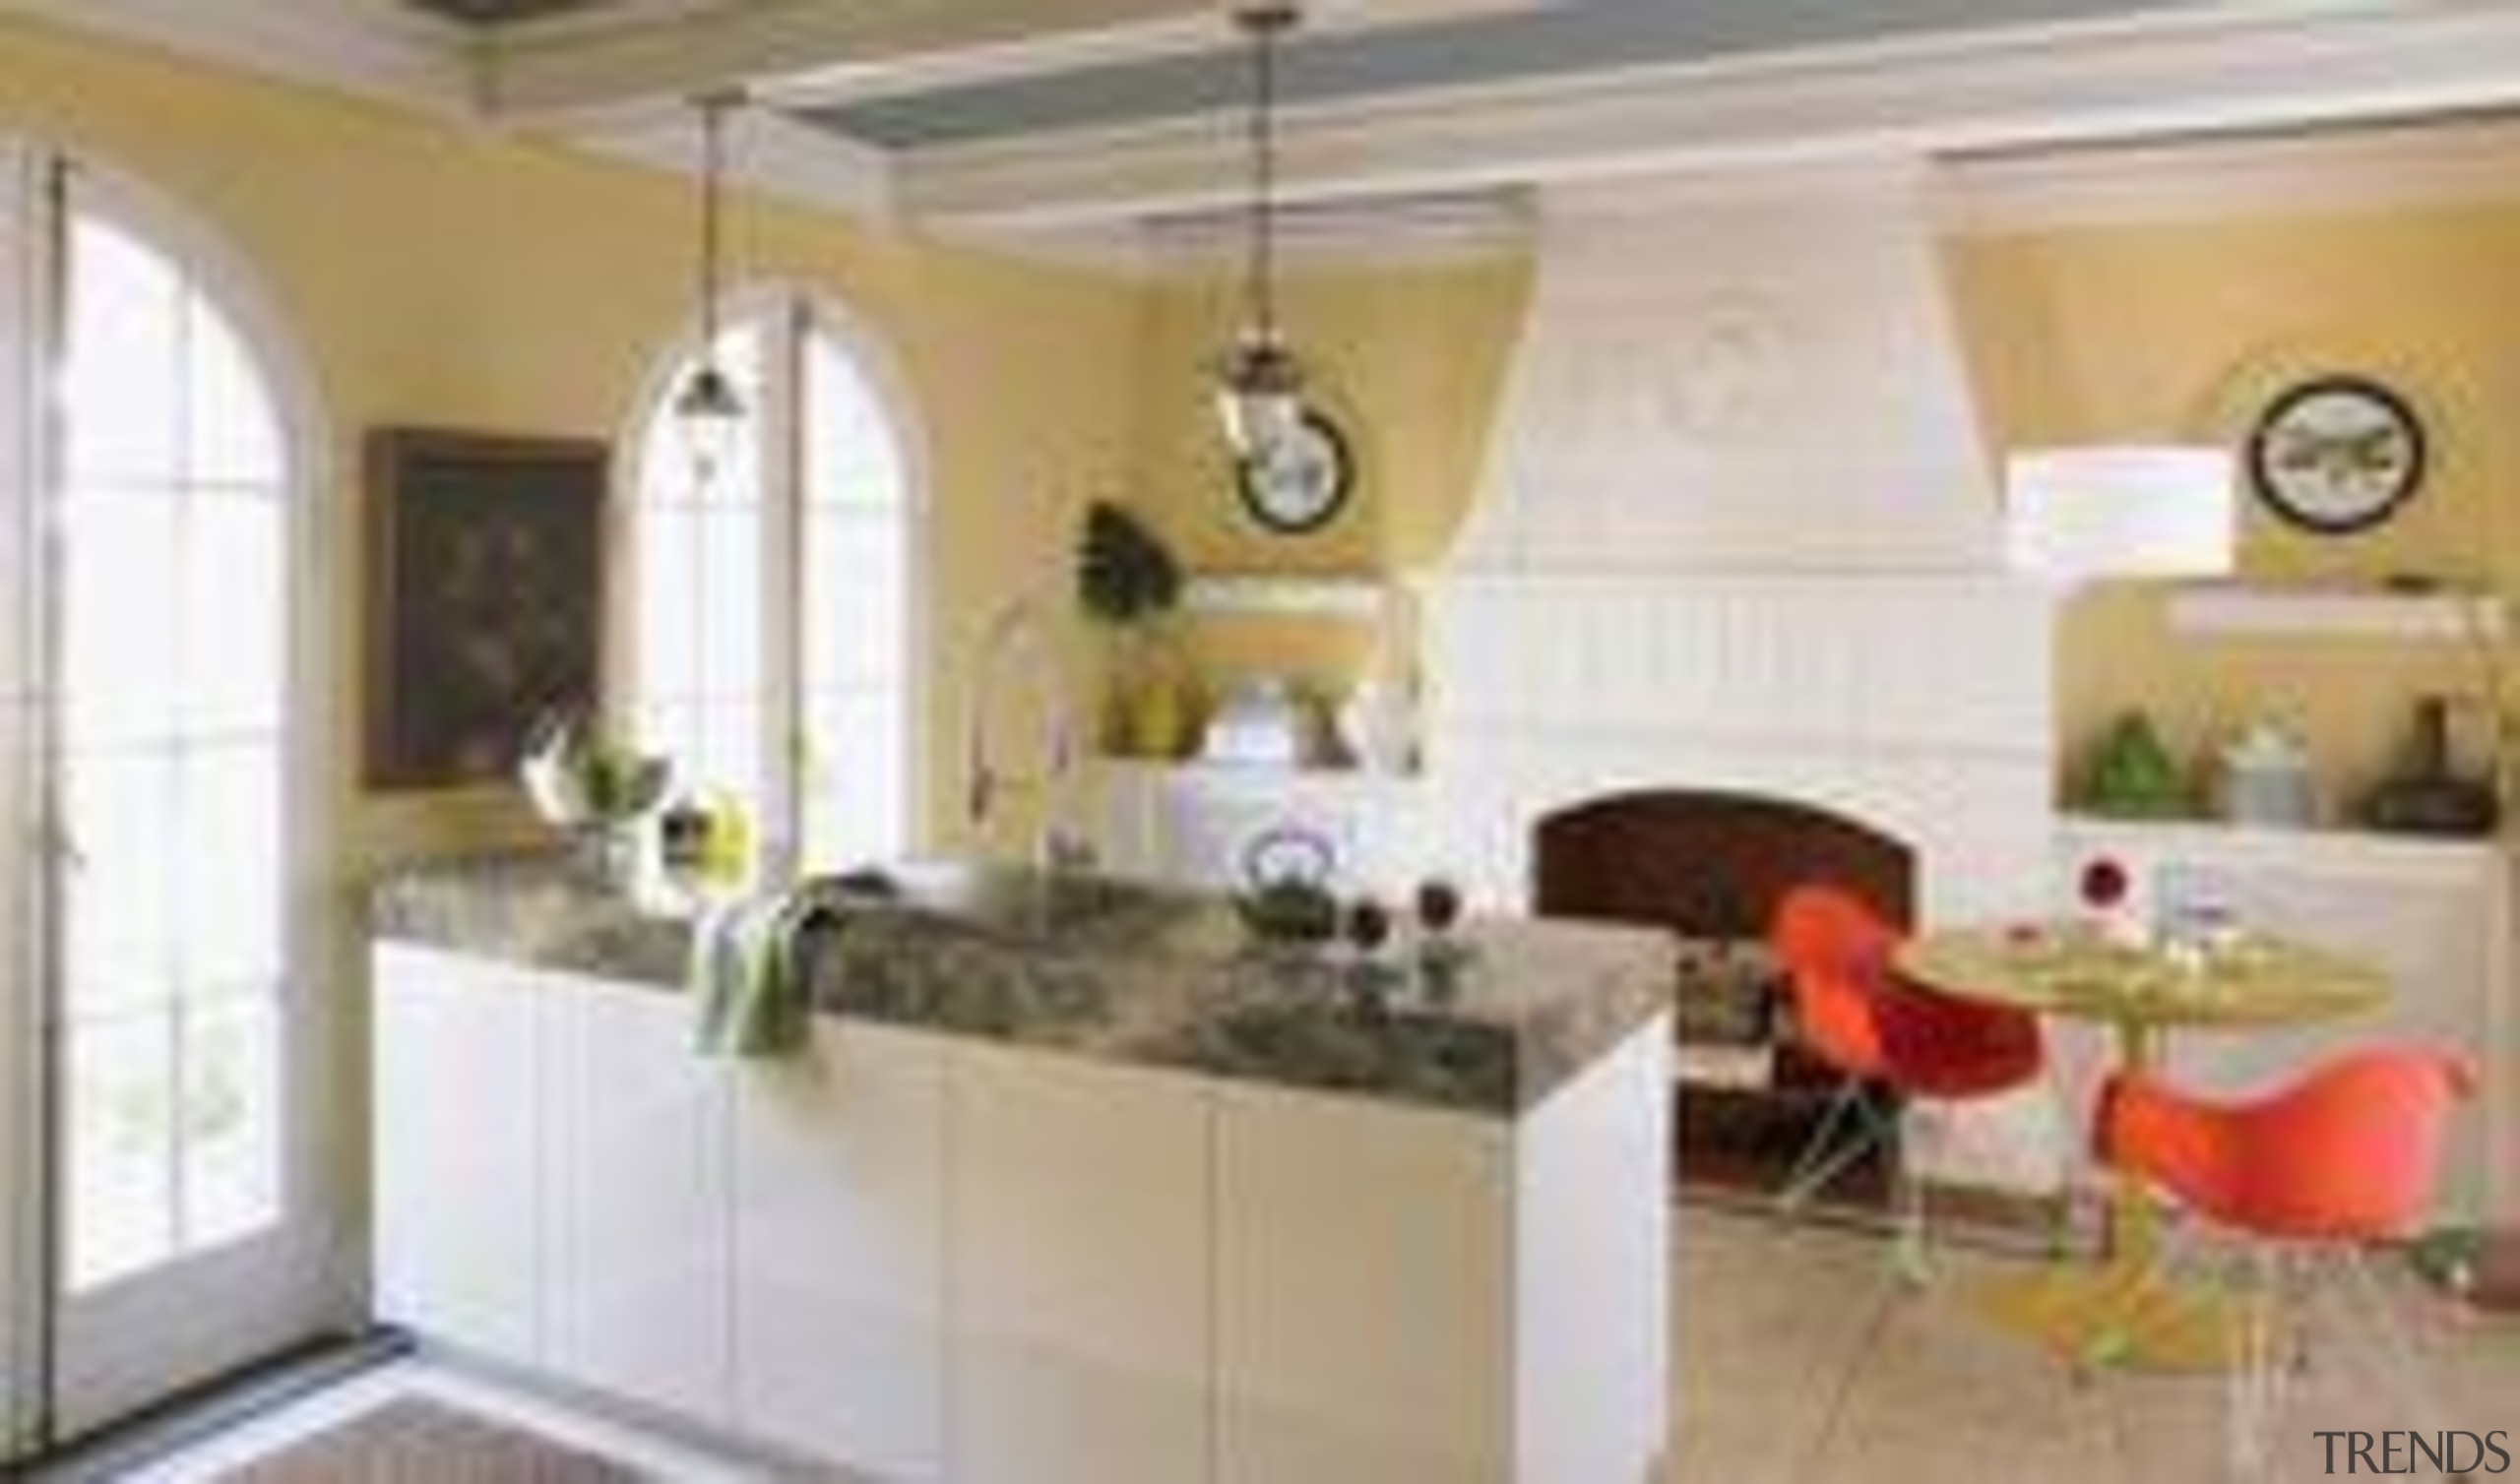 My Dream Kitchen : Inspiration Gallery : Country home, interior design, kitchen, property, real estate, room, gray